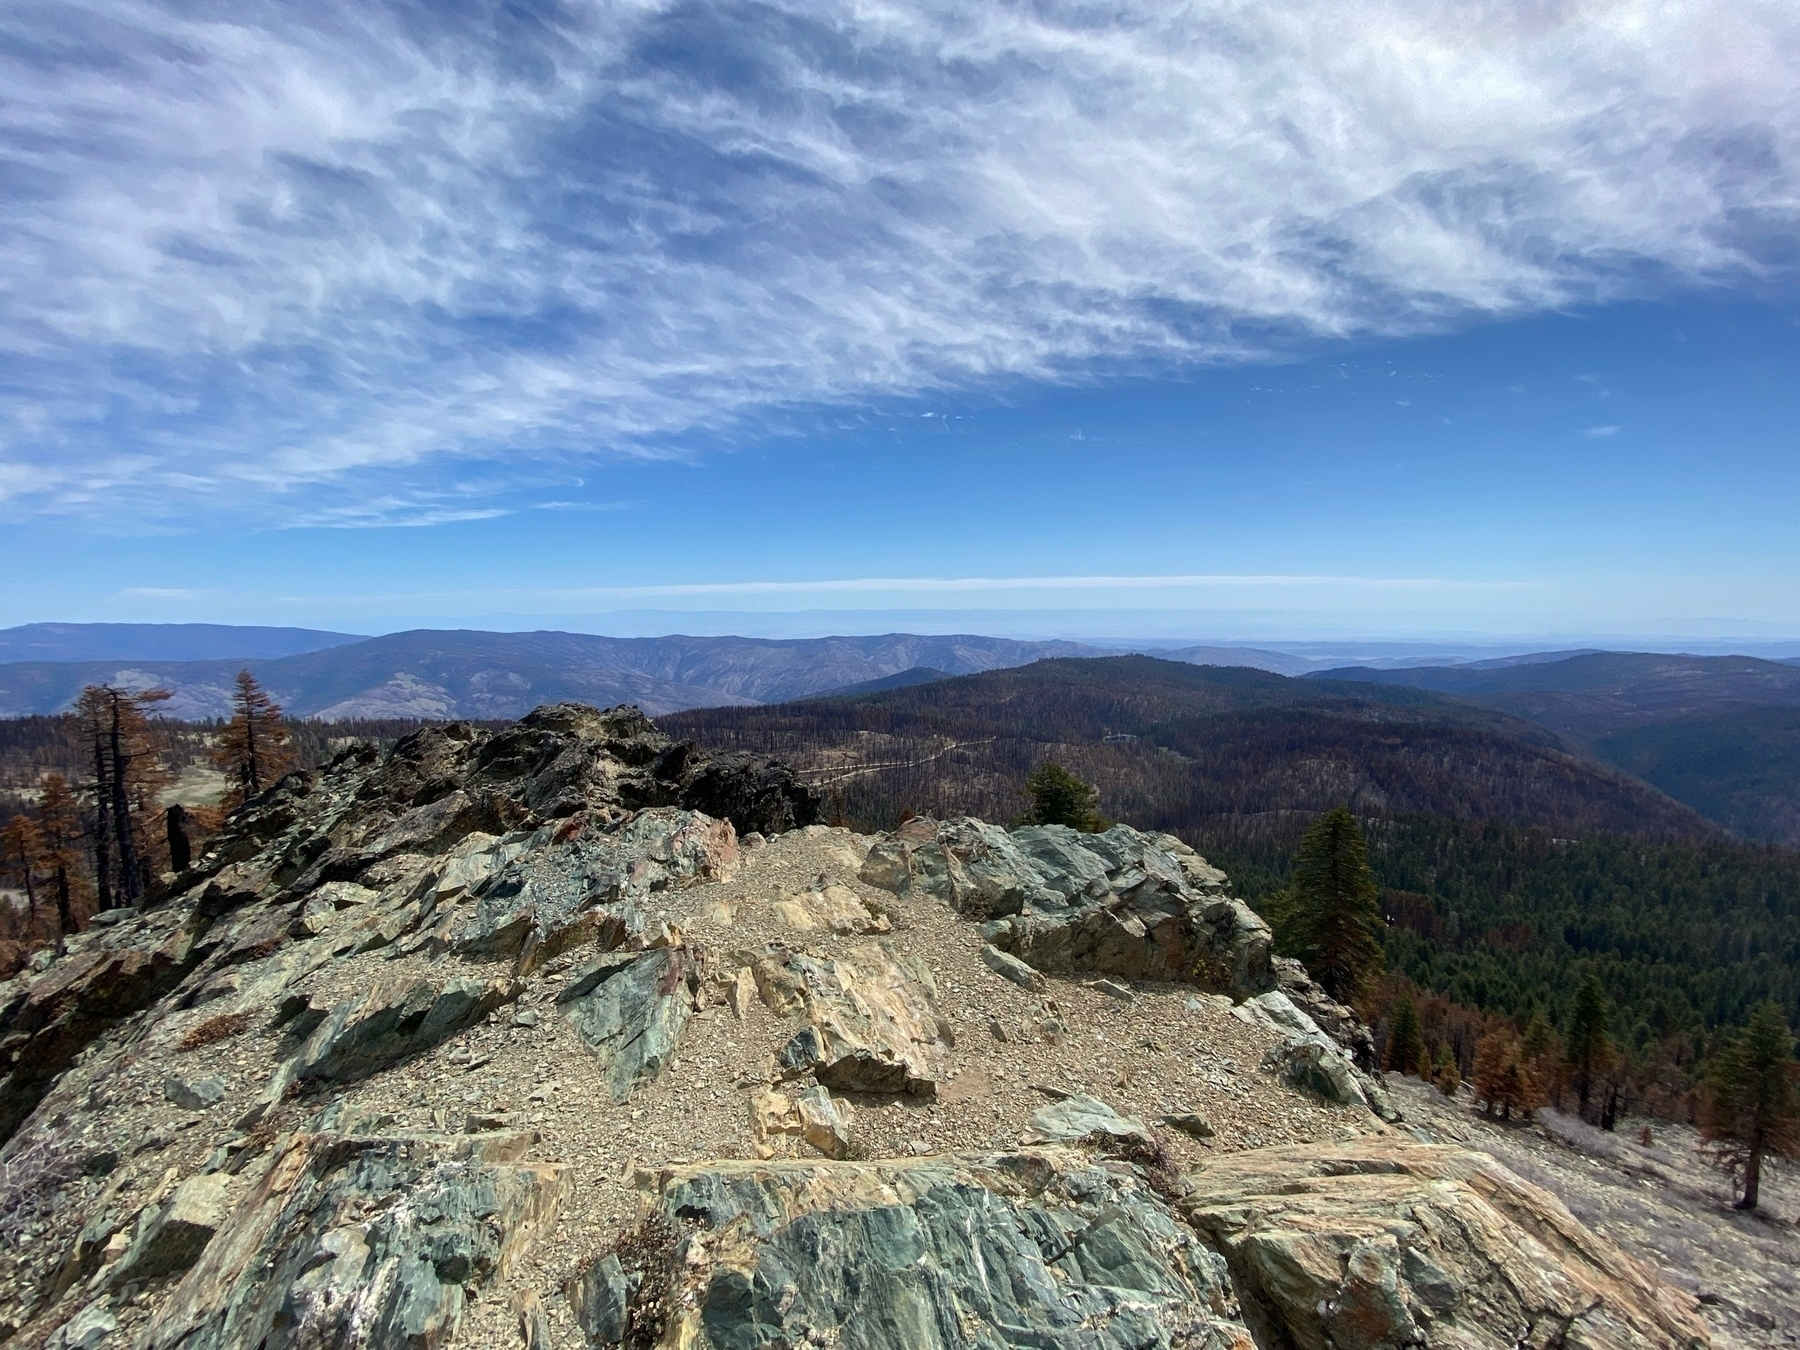 one view from the summit of Black Butte